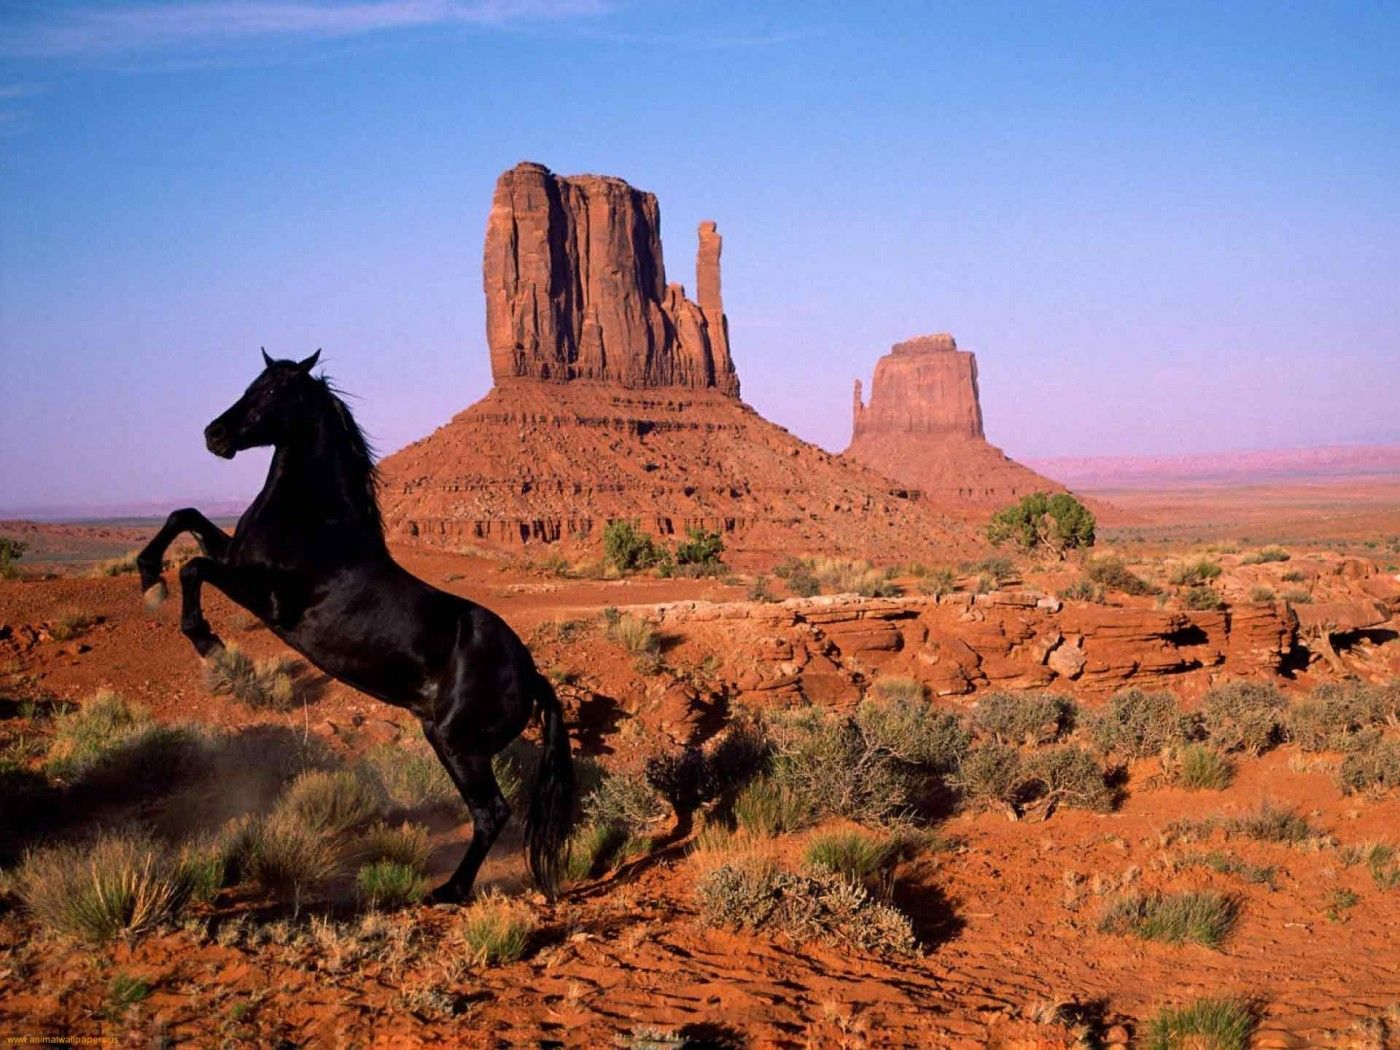 Good Wallpaper Horse Desert - 989d37f61a7478dc6de8473178fee9b0  Pictures_91981.jpg